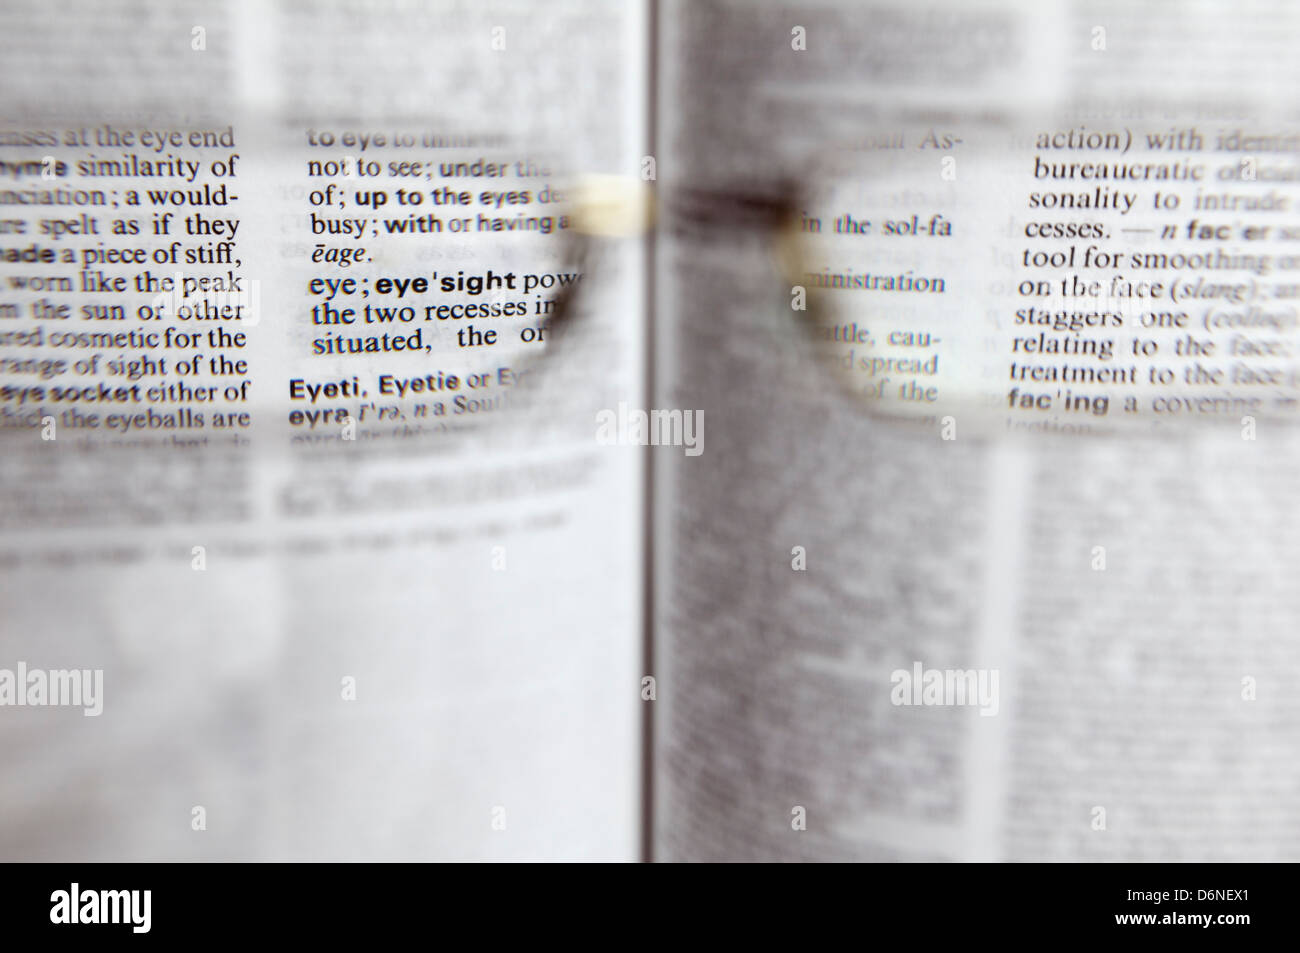 View through prescription glasses focusing on the word eyesight - Stock Image